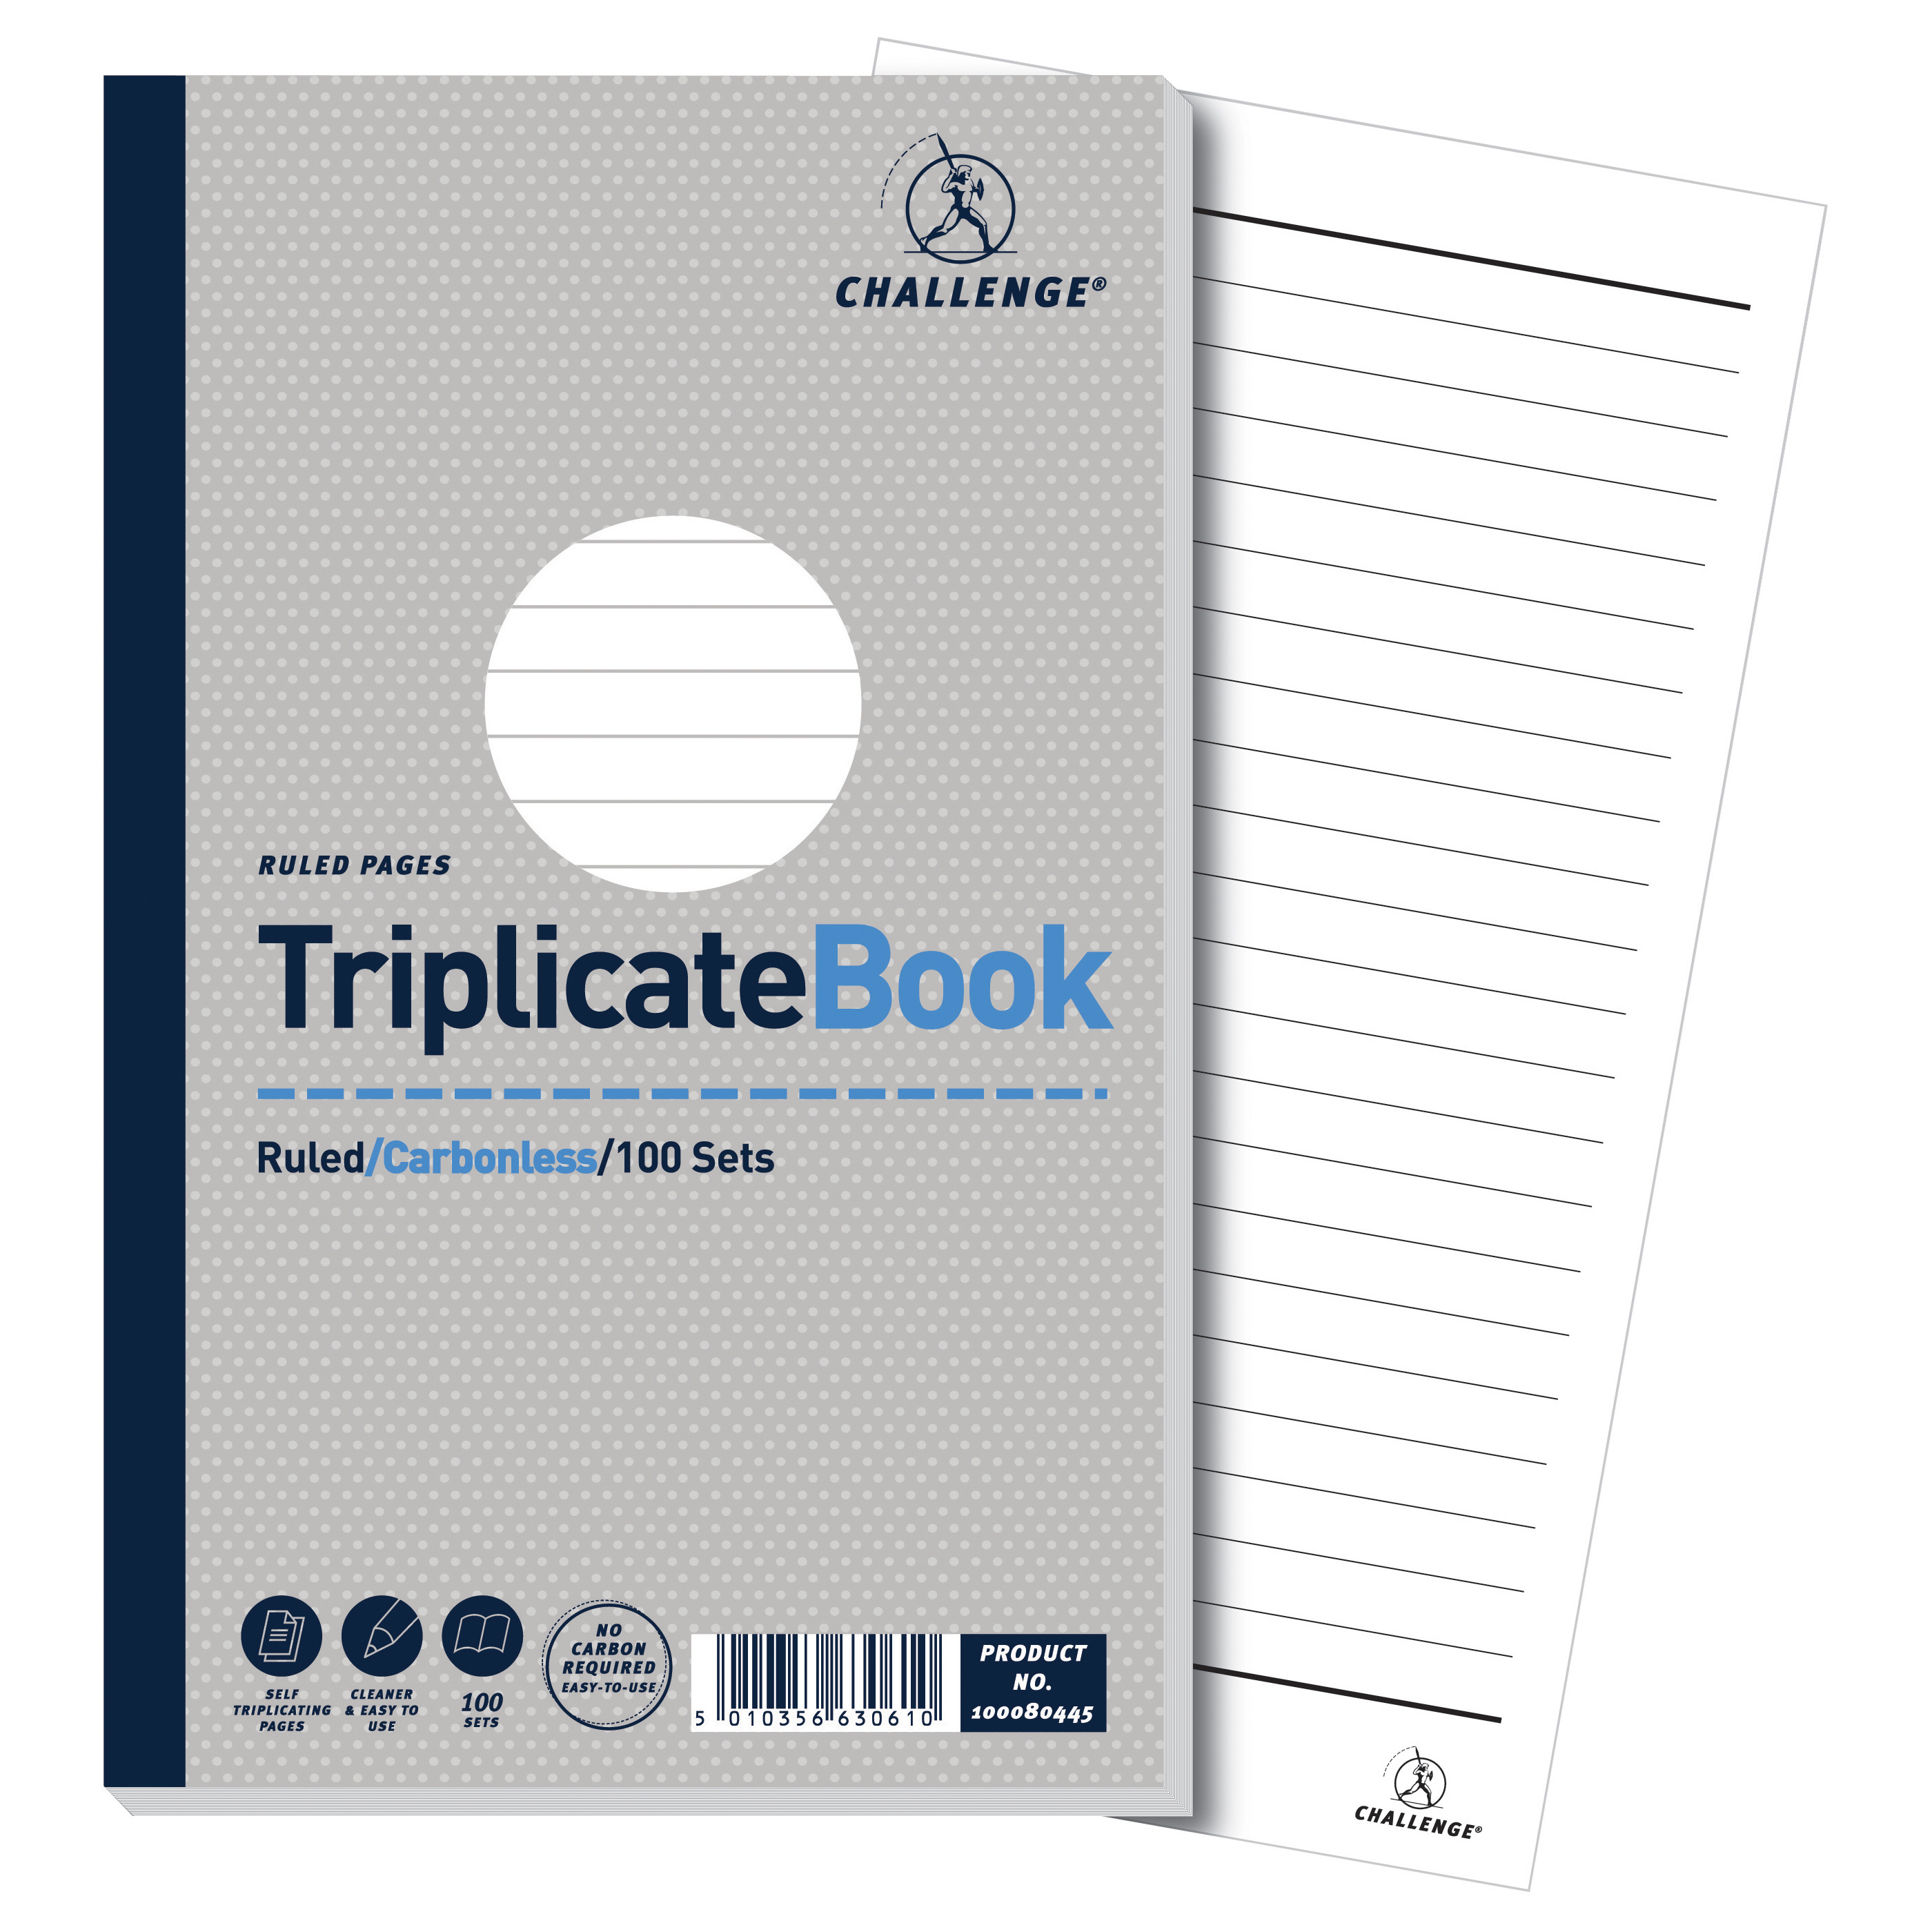 Challenge Triplicate Book Carbonless Ruled 100 Sets 210x130mm Ref 100080445 Pack 5